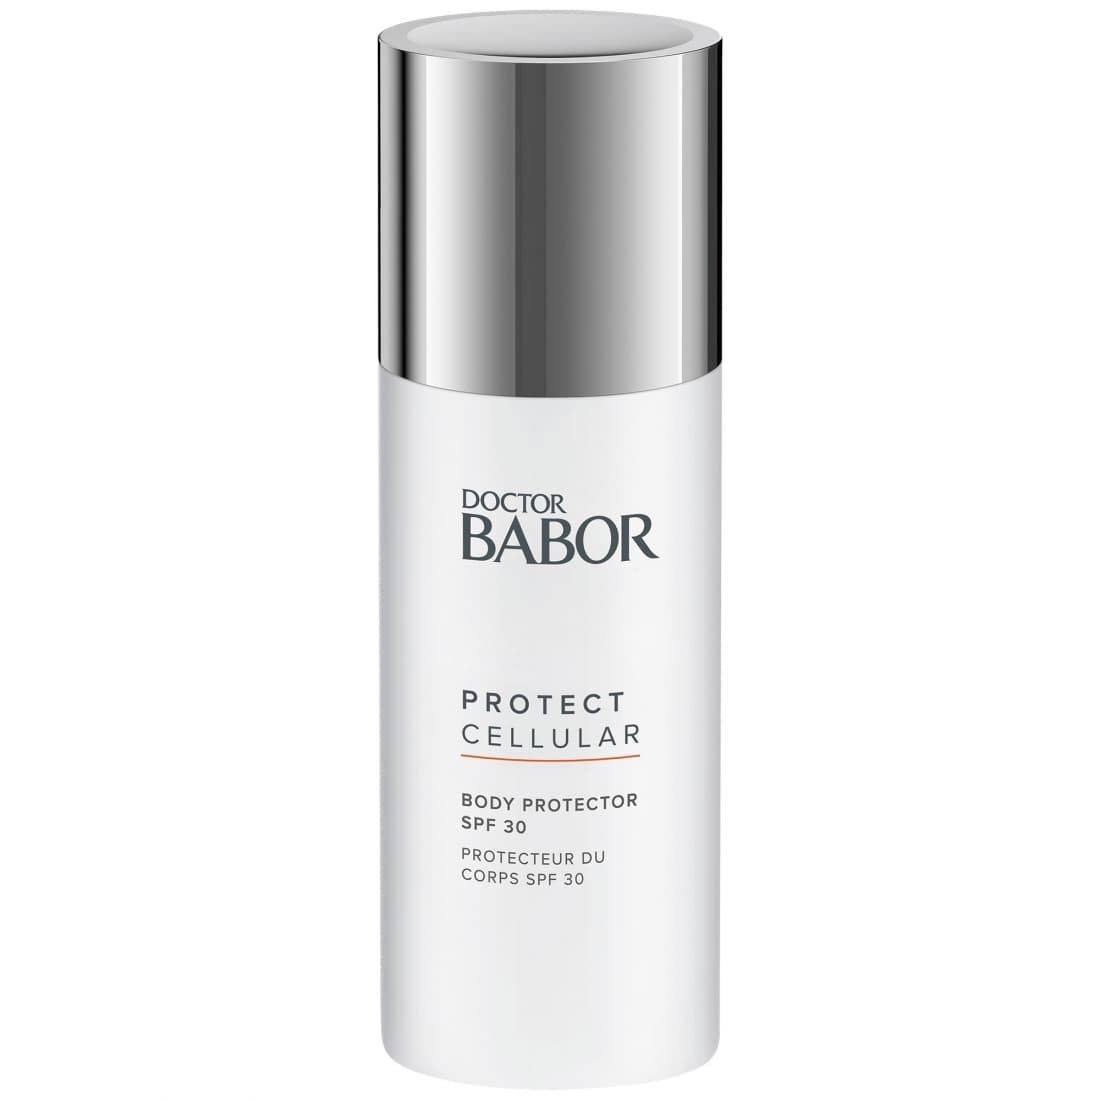 DOCTOR BABOR BODY PROTECTION SPF 30 - Imagen 1